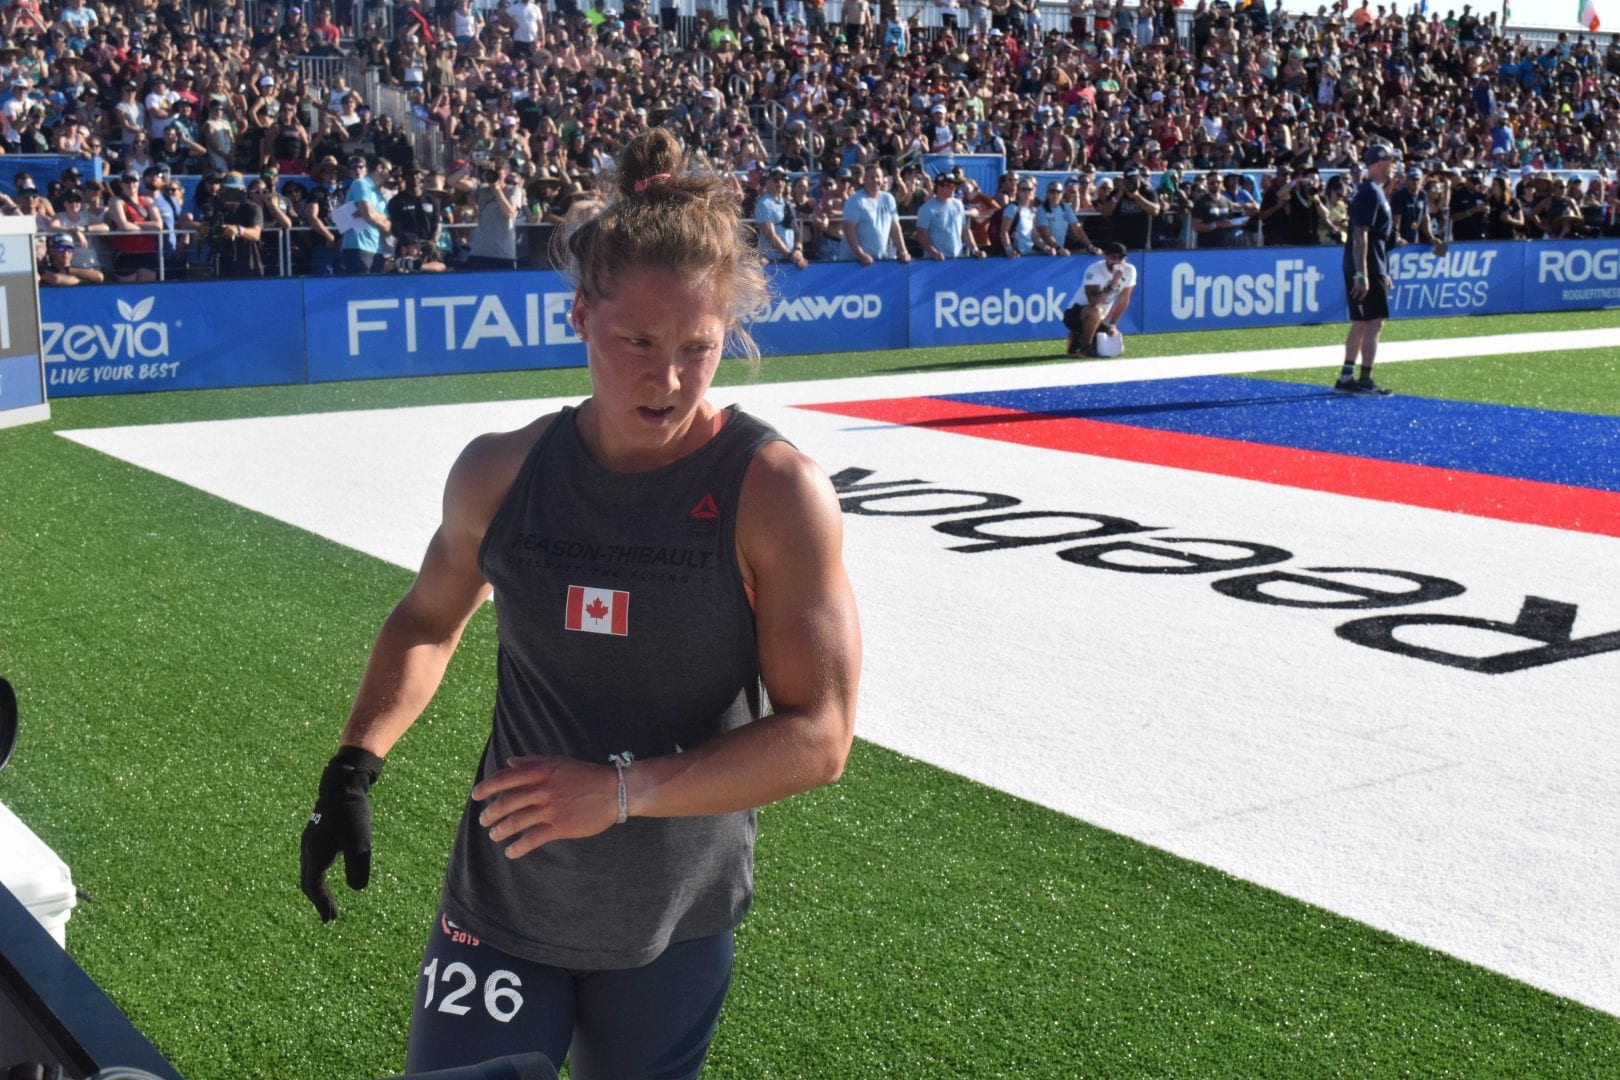 Carol-Ann Reason-Thibault crosses the finish line of an event at the 2019 CrossFit Games